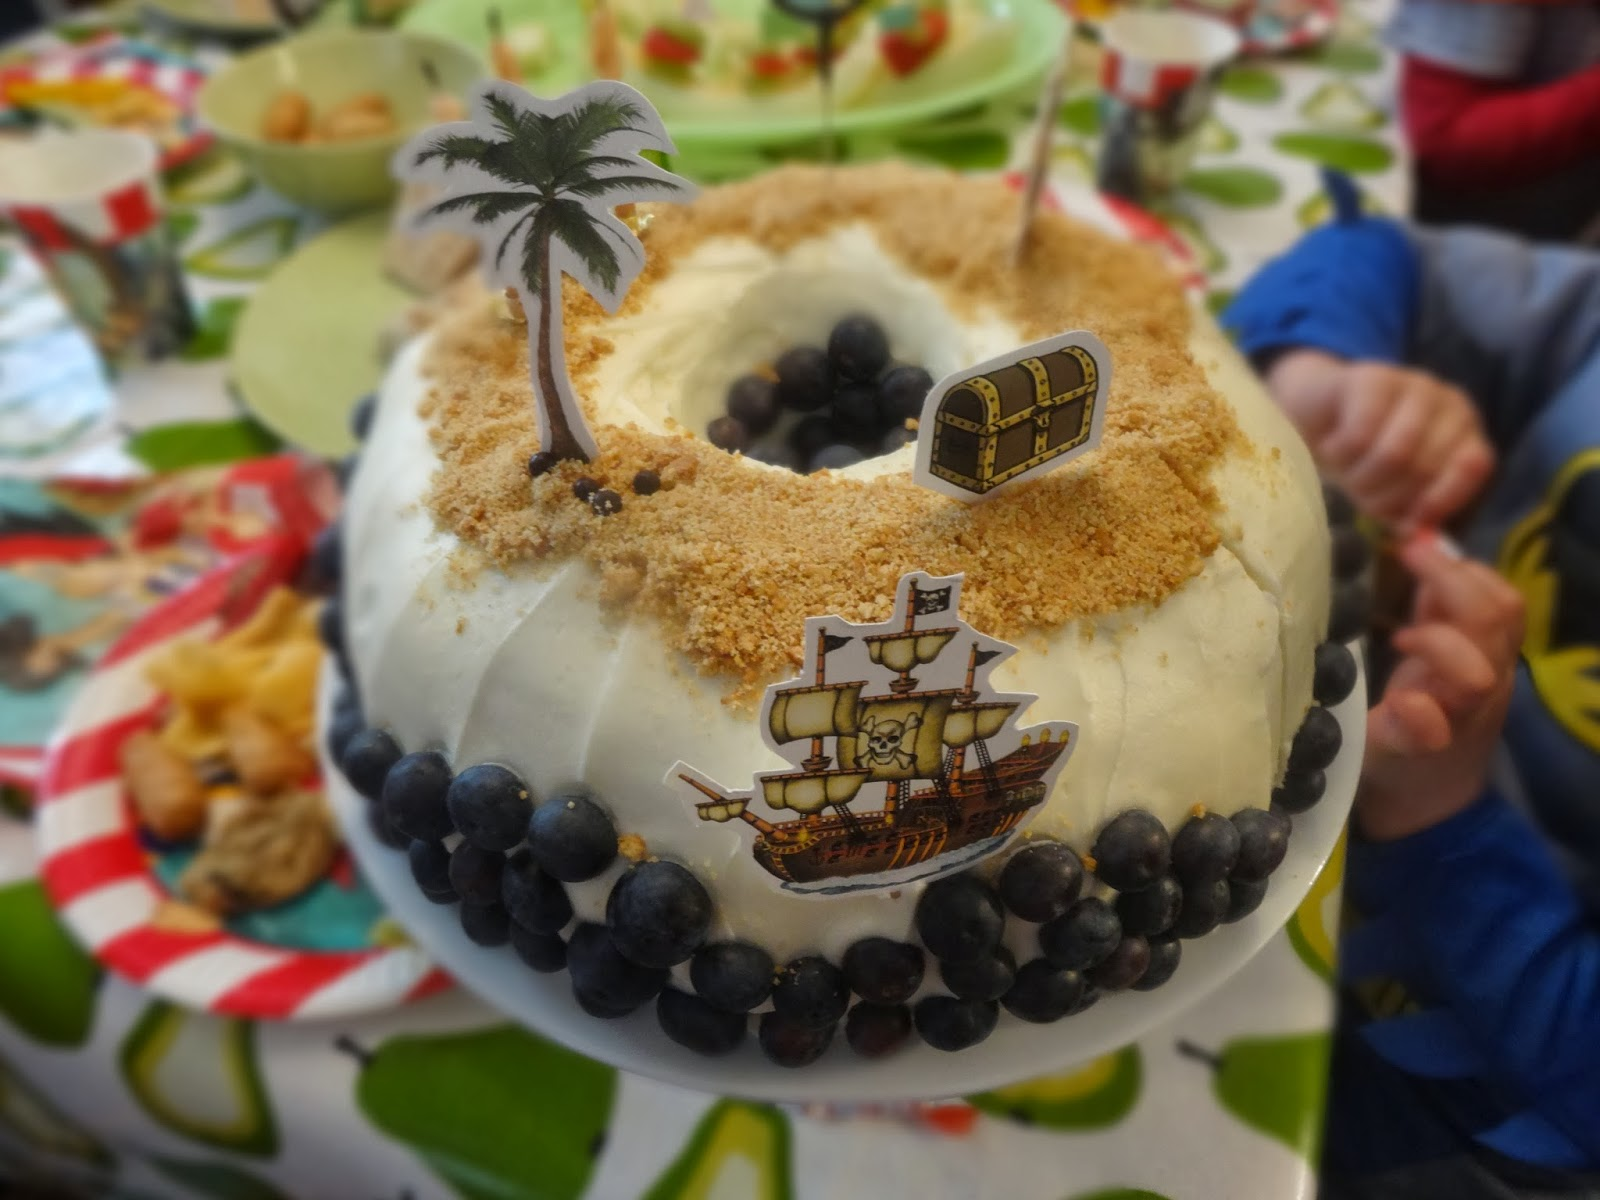 Blueberry Cream Cheese Pirate Cake